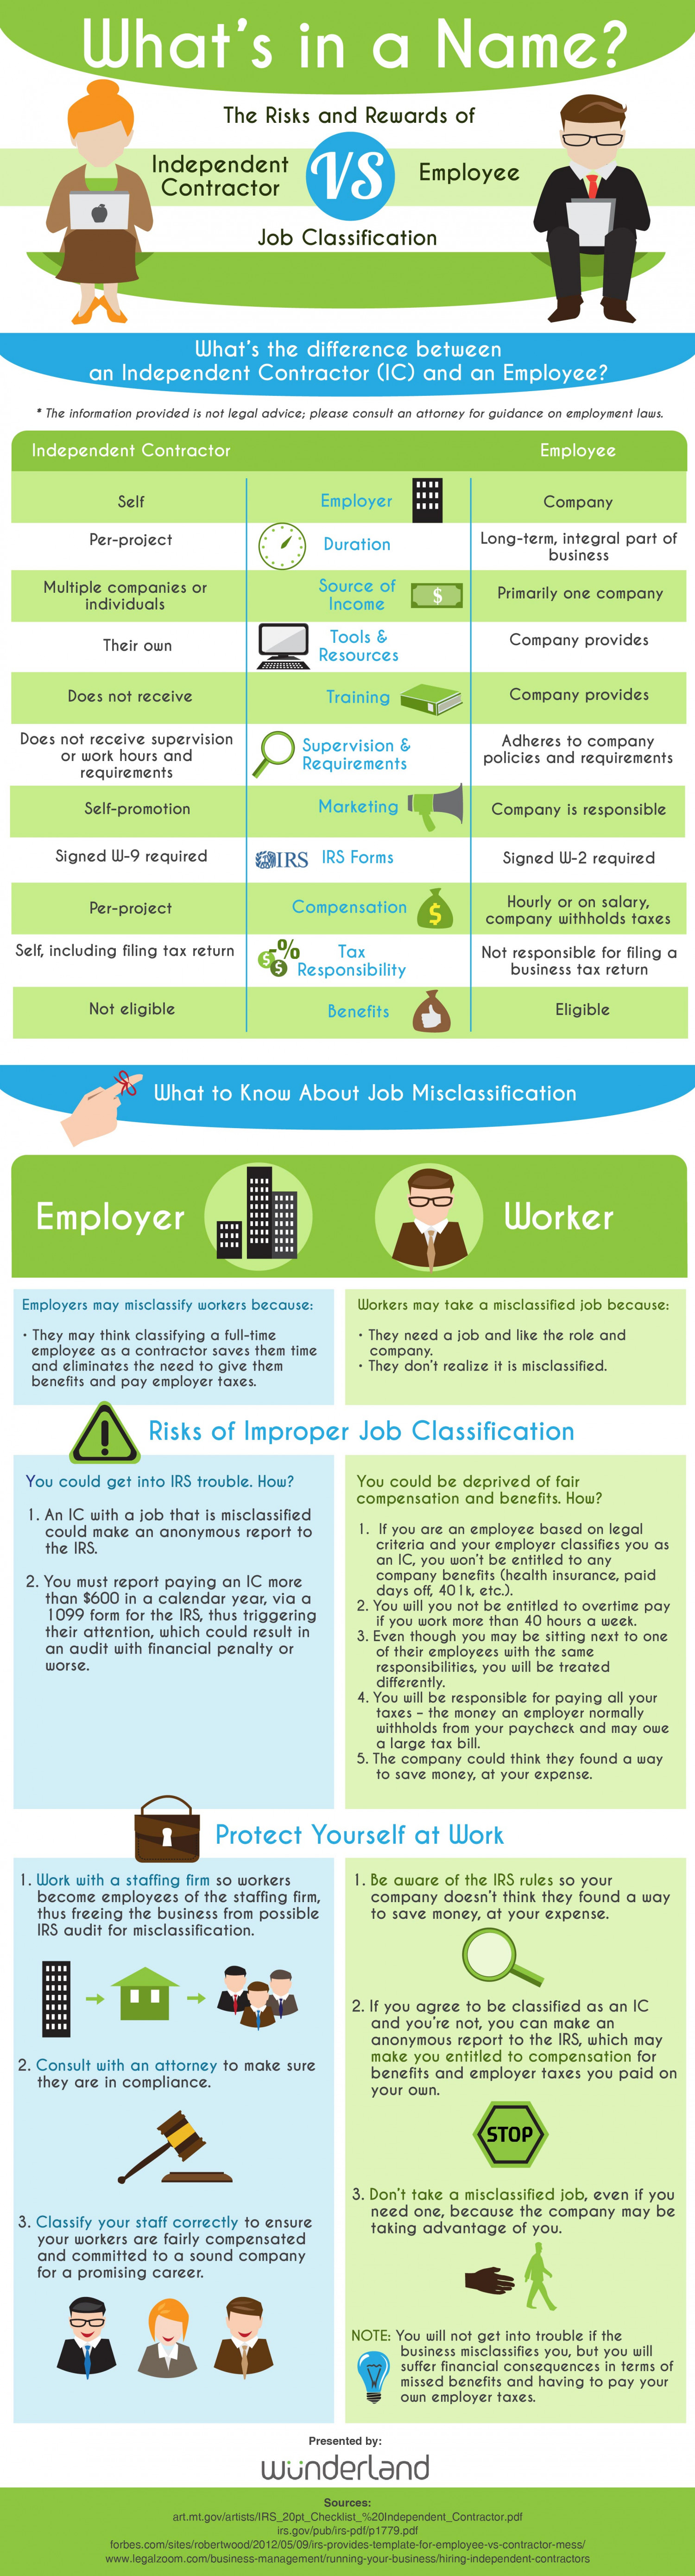 Why Employee vs. Independent Contactor Classification Matters Infographic